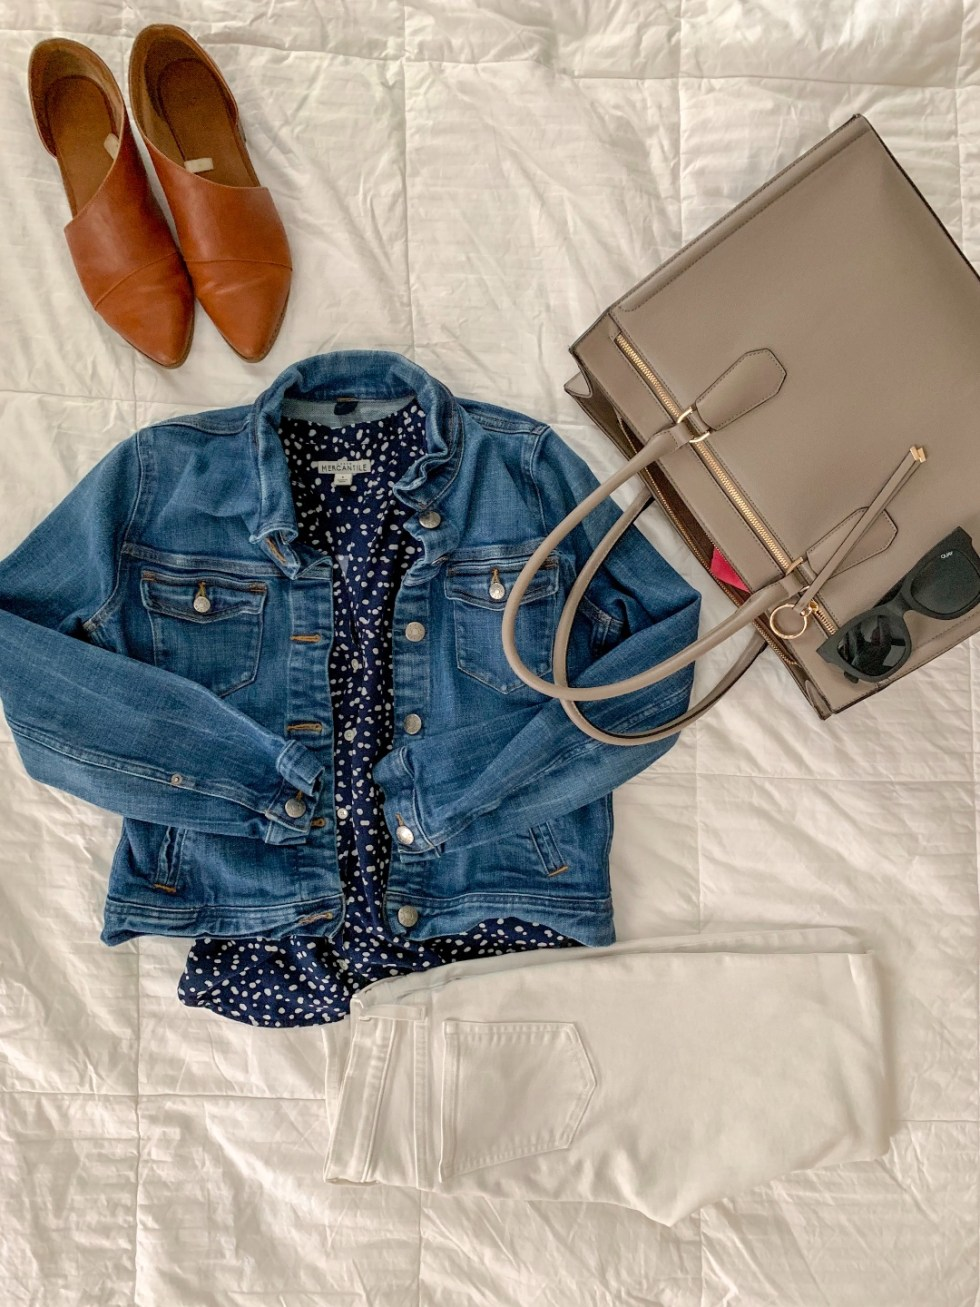 Building Your Spring Wardrobe Capsule - I'm Fixin' To - @mbg0112 | | Spring wardrobe capsule essentials featured by top US fashion blog, I'm Fixin' To: denim jacket